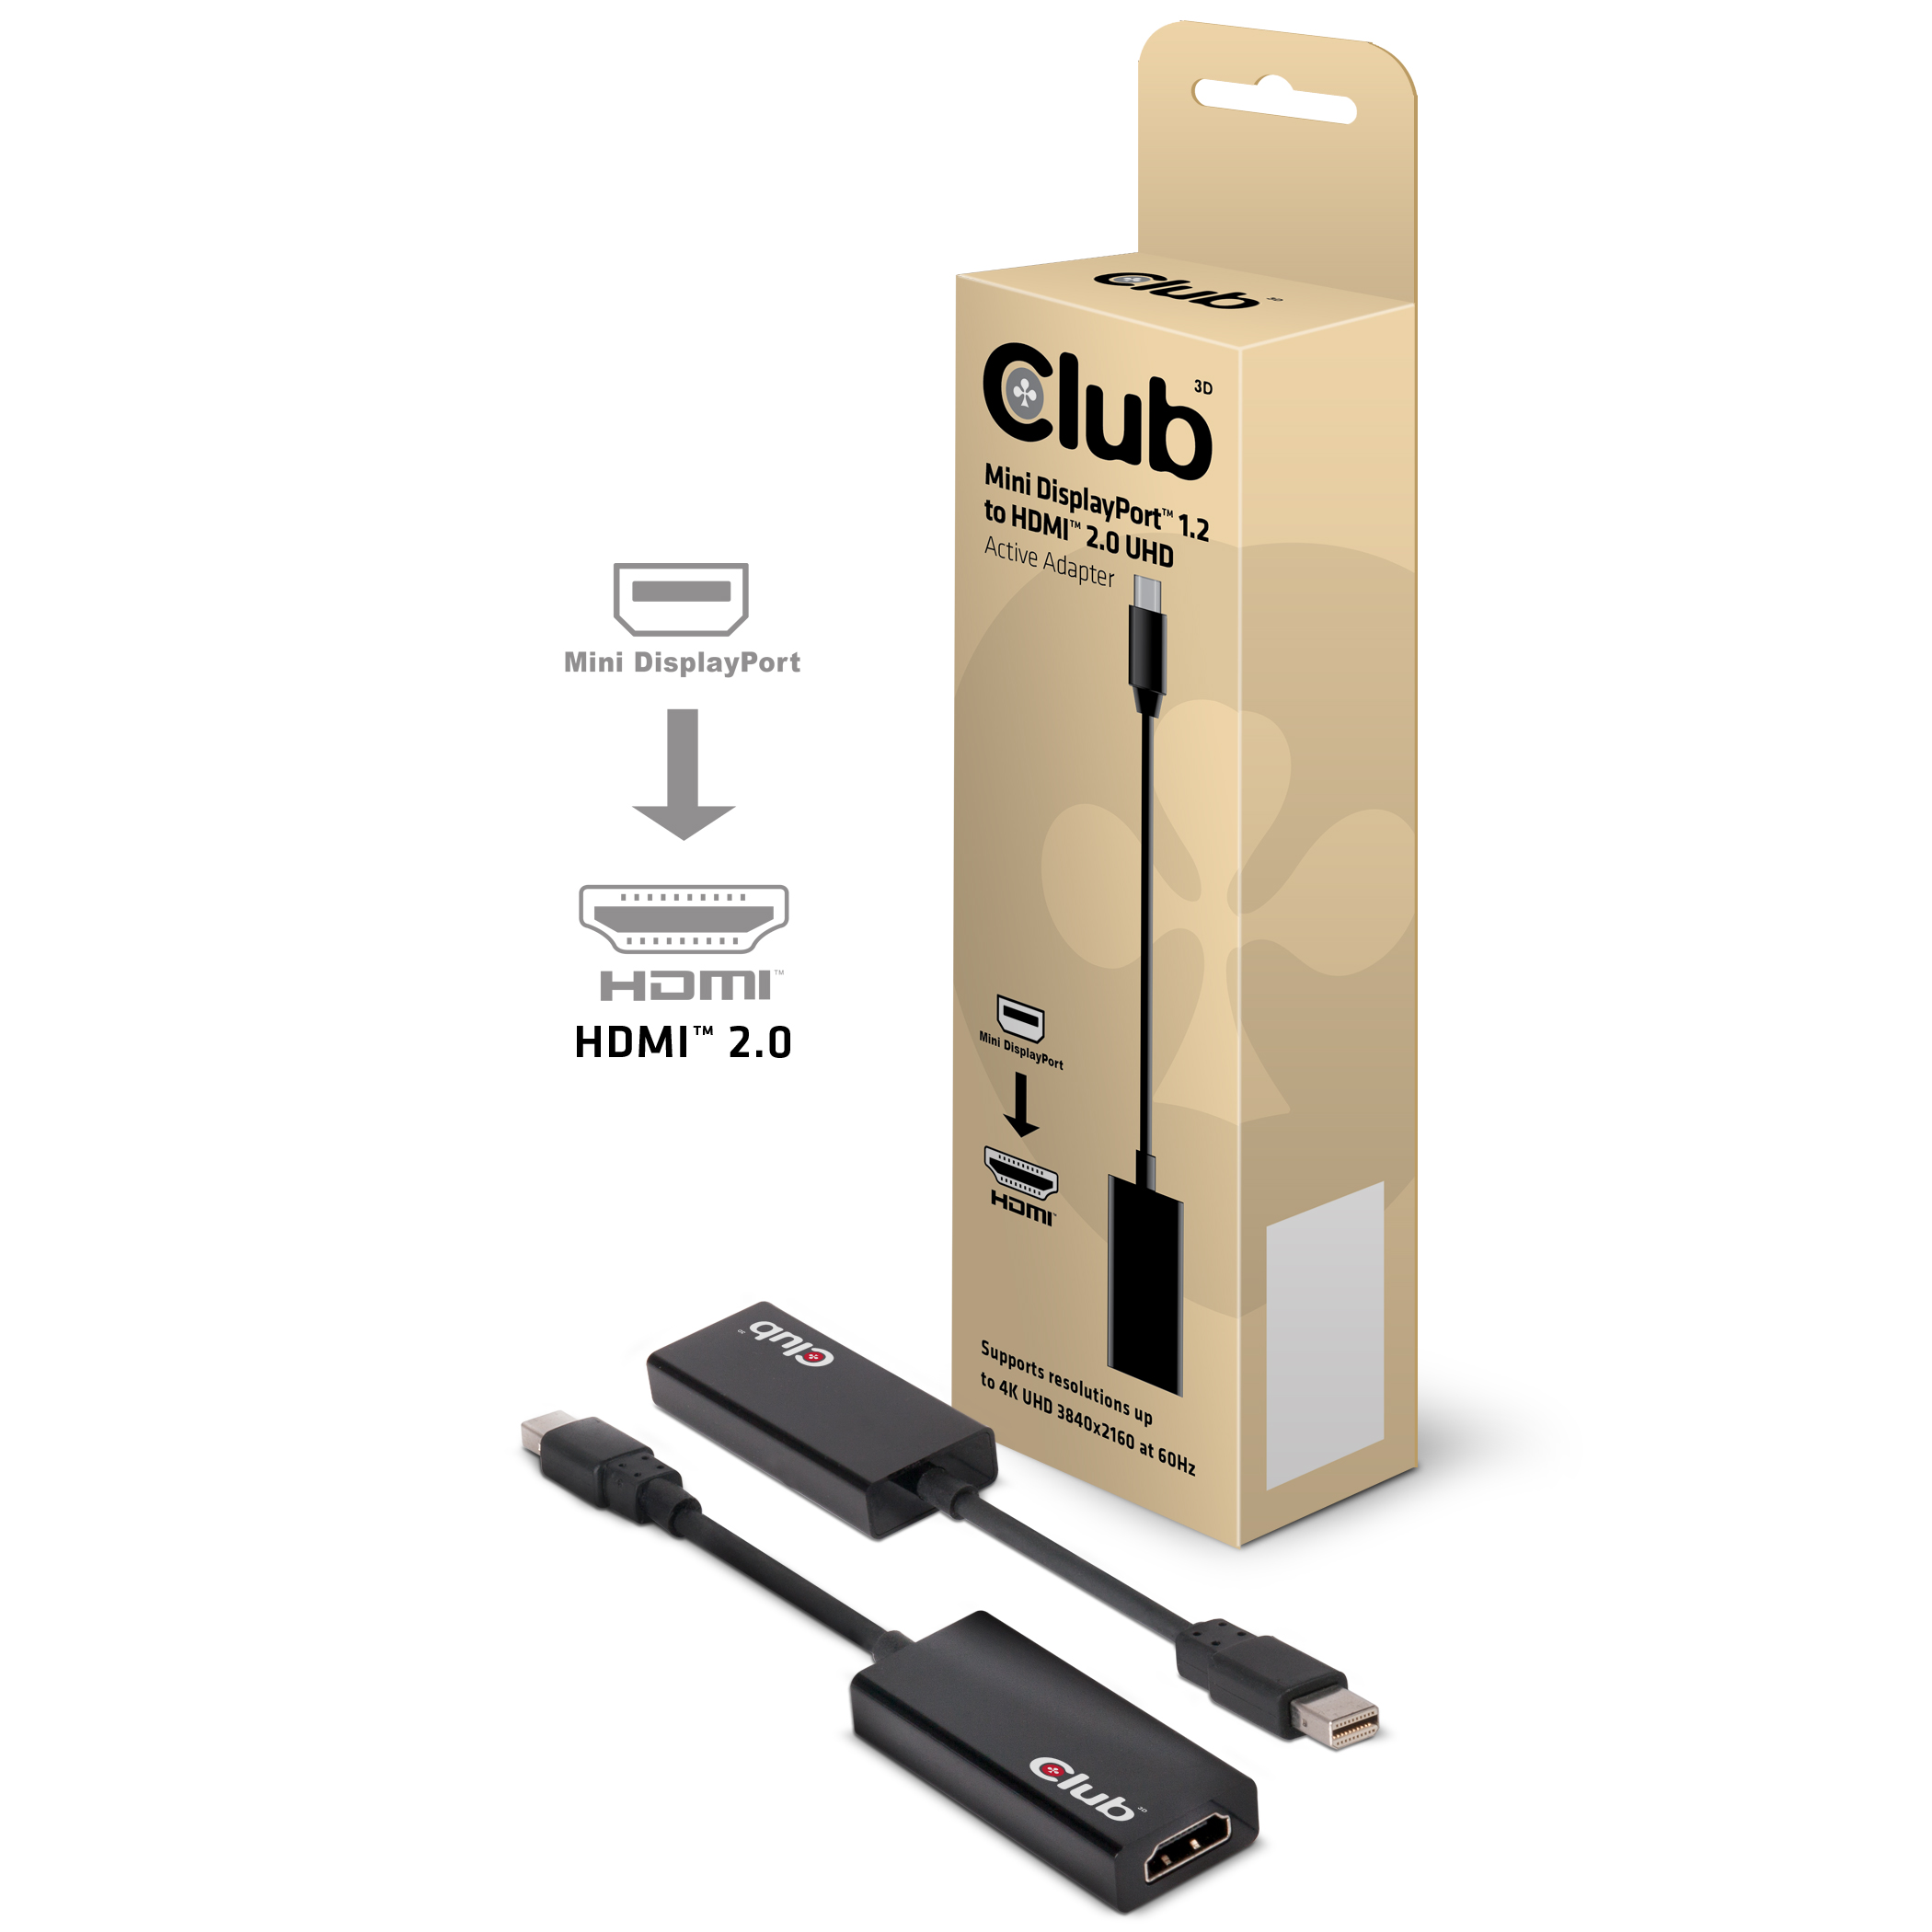 CLUB 3D MINI DISPLAYPORT  1.2 TO HDMI 2.0 4K 60Hz UHD ACTIVE ADAPTER